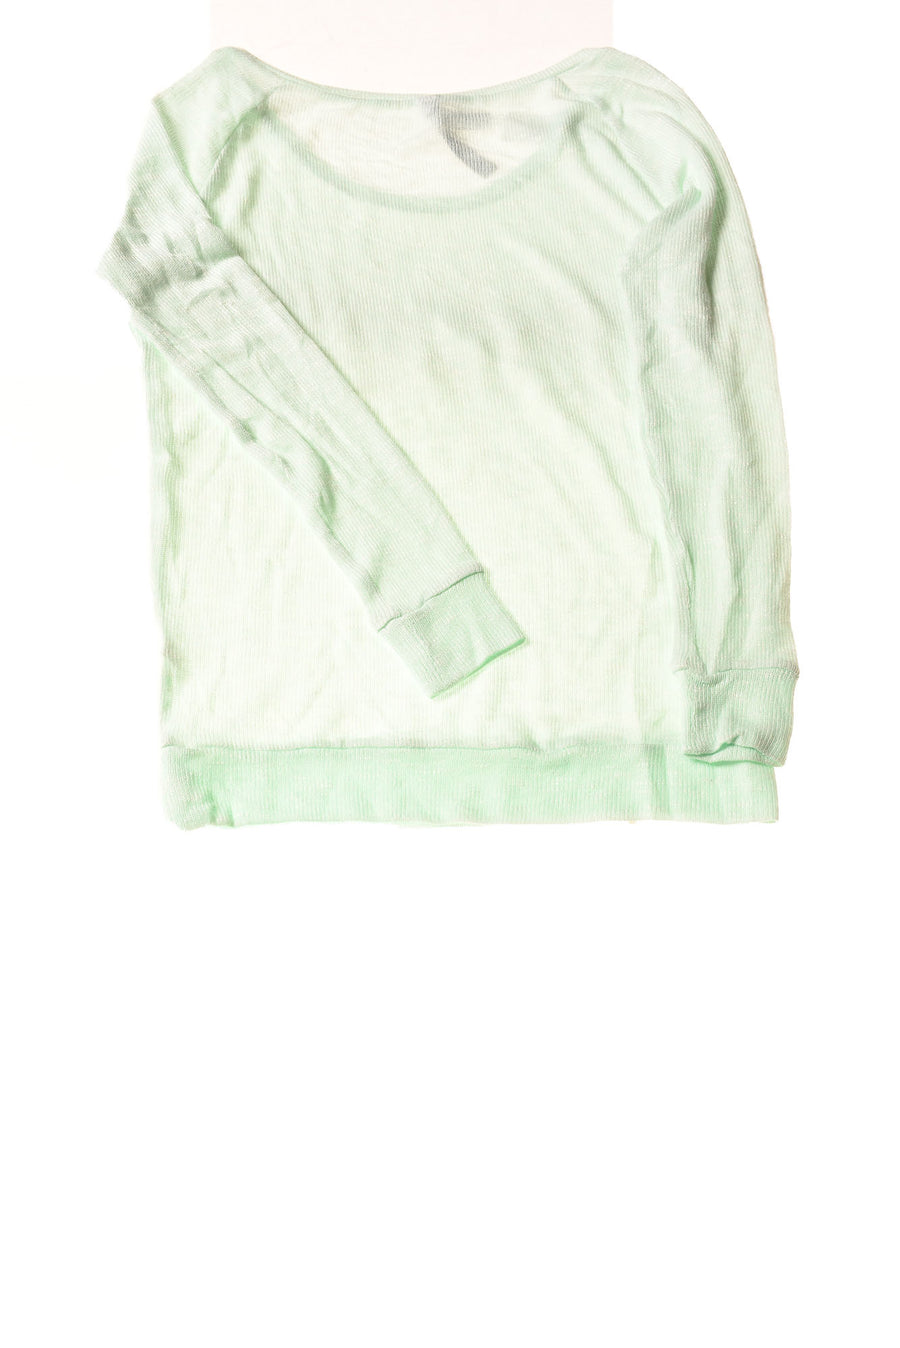 NEW Live Love Dream Women's Top Small Mint